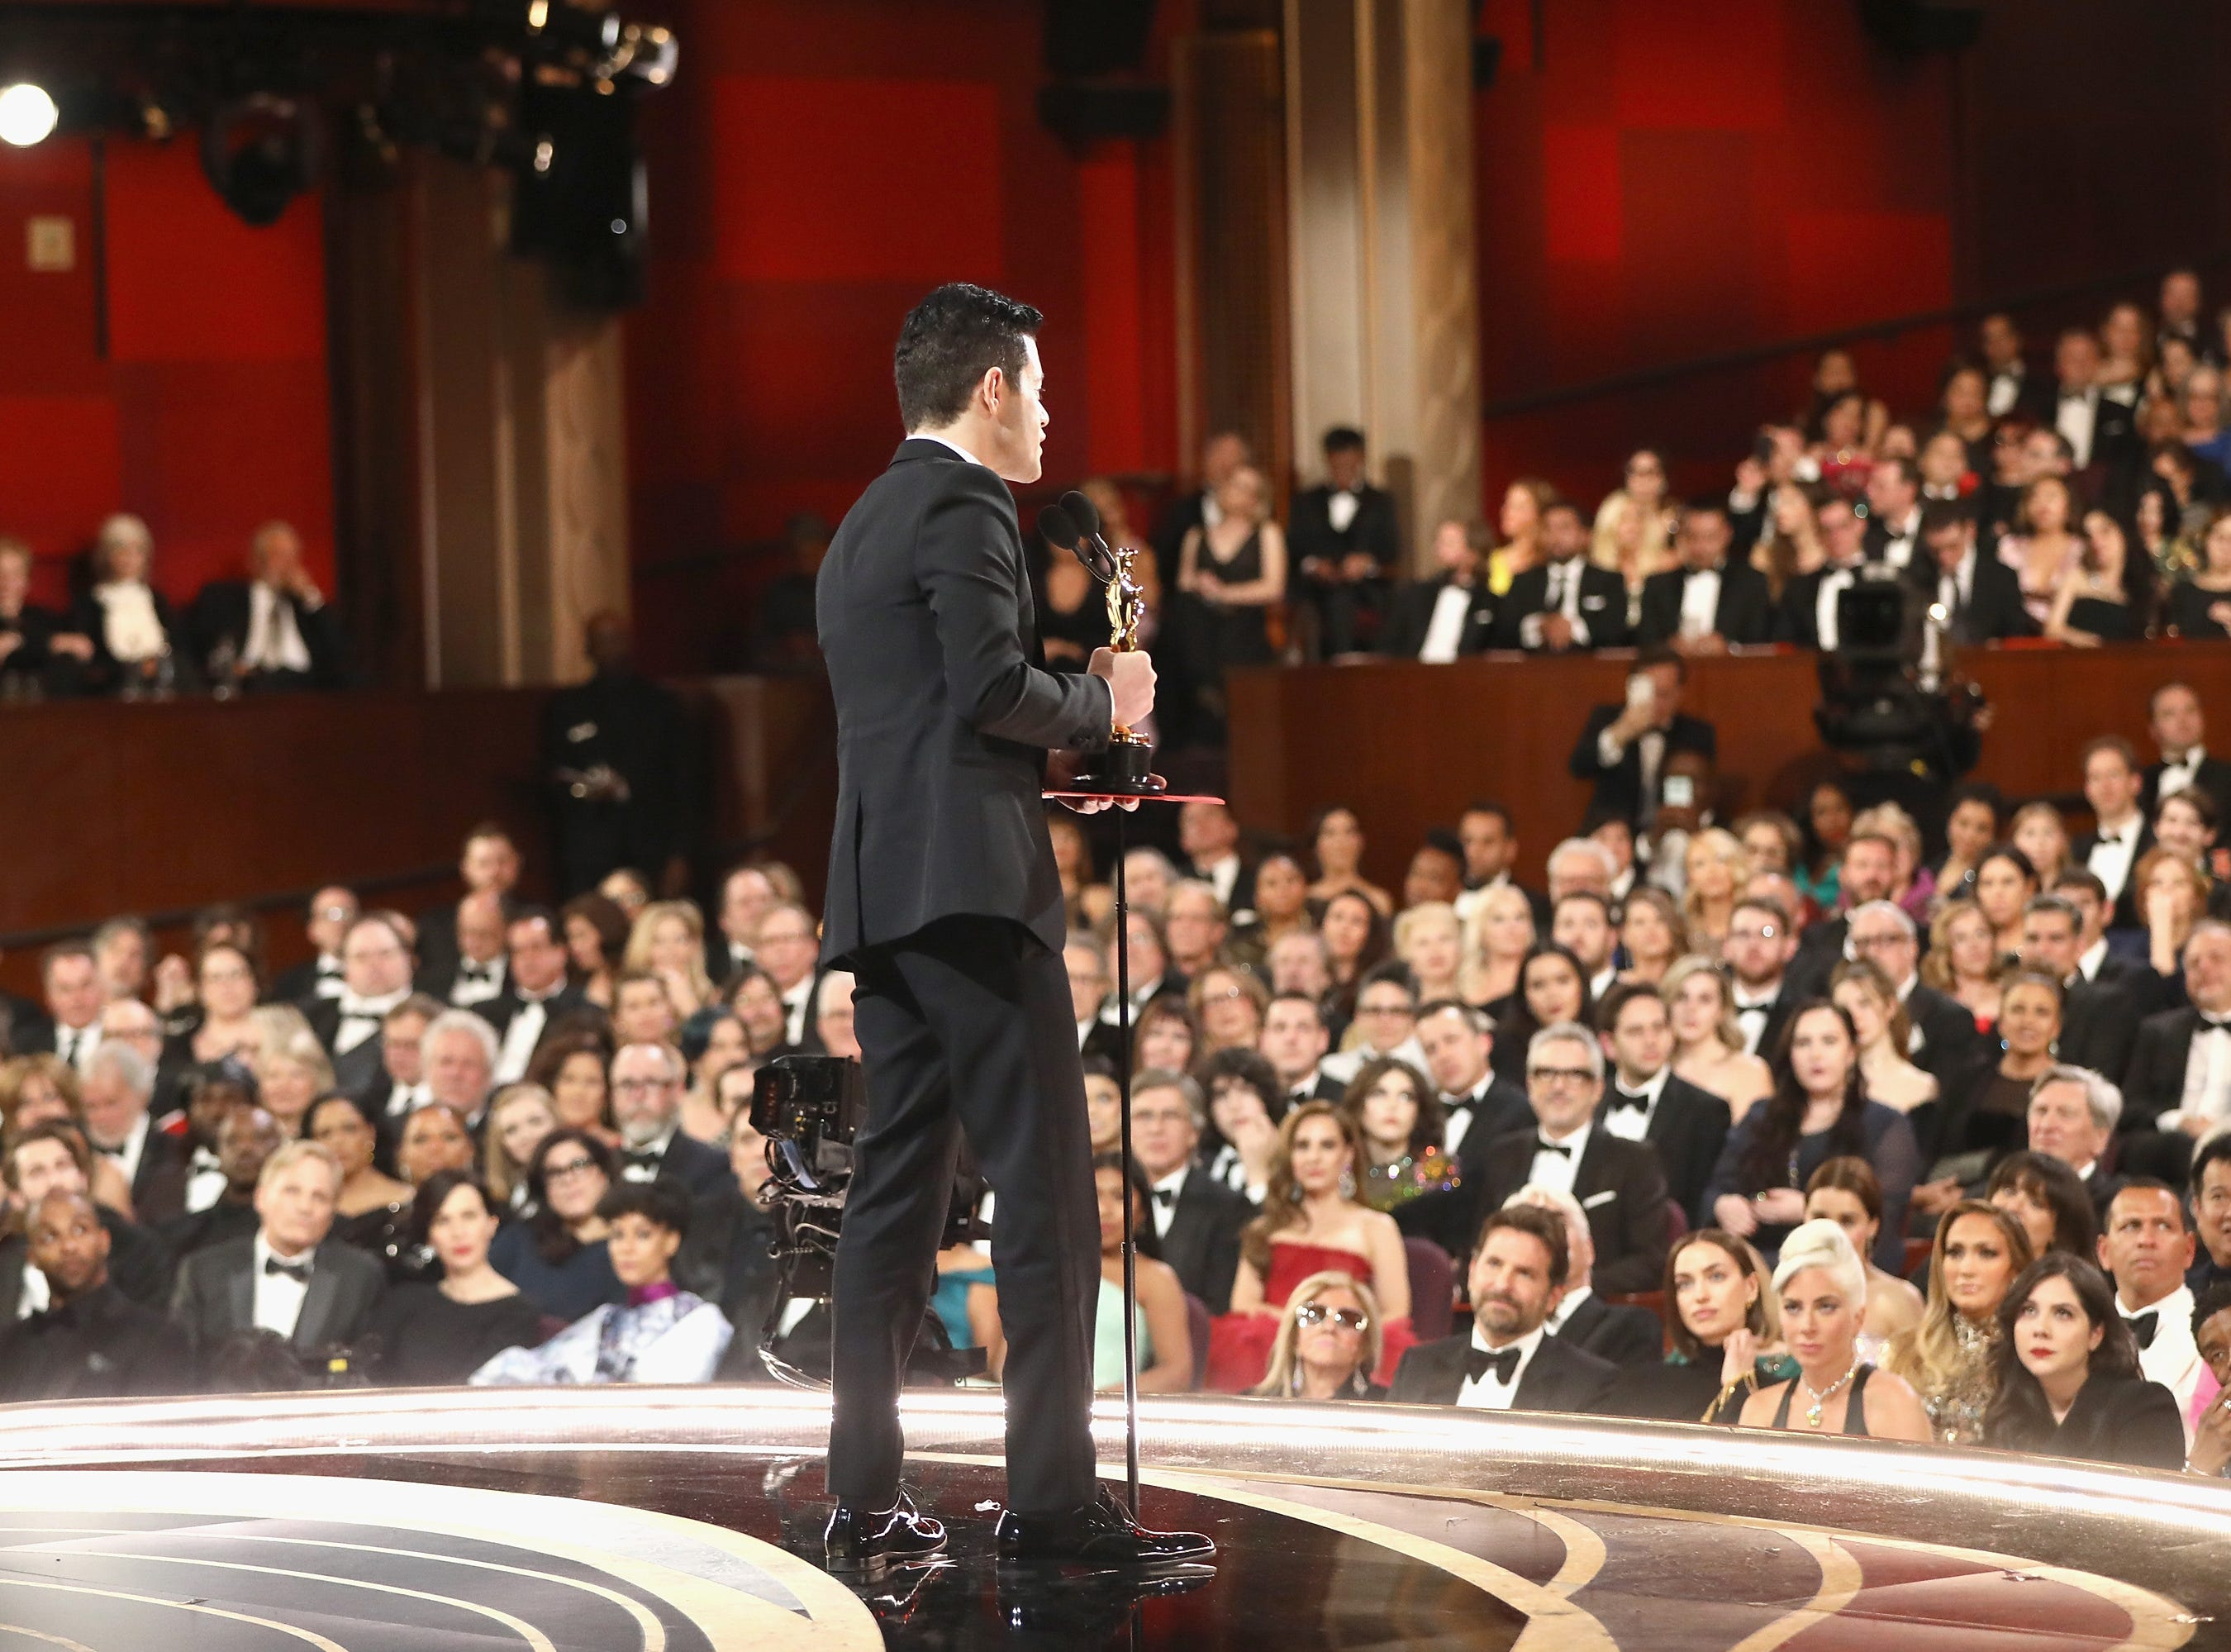 Rami Malek accepts the Actor in a Leading Role award for 'Bohemian Rhapsody' onstage during the 91st Annual Academy Awards at the Dolby Theatre on February 24, 2019 in Hollywood, California.